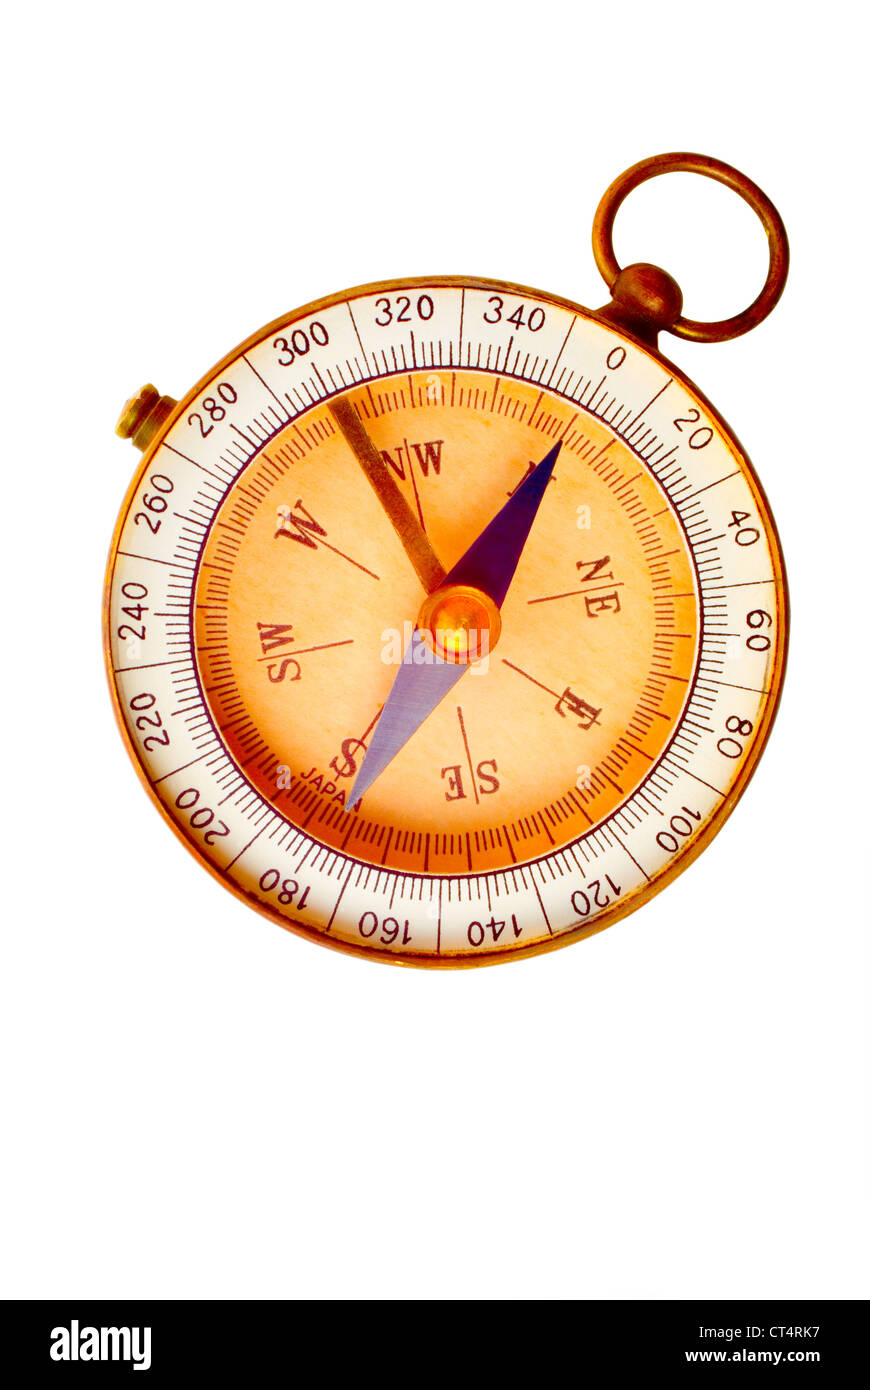 Aged compass isolated on white background. Concepts of discovery,  exploration navigation, direction.